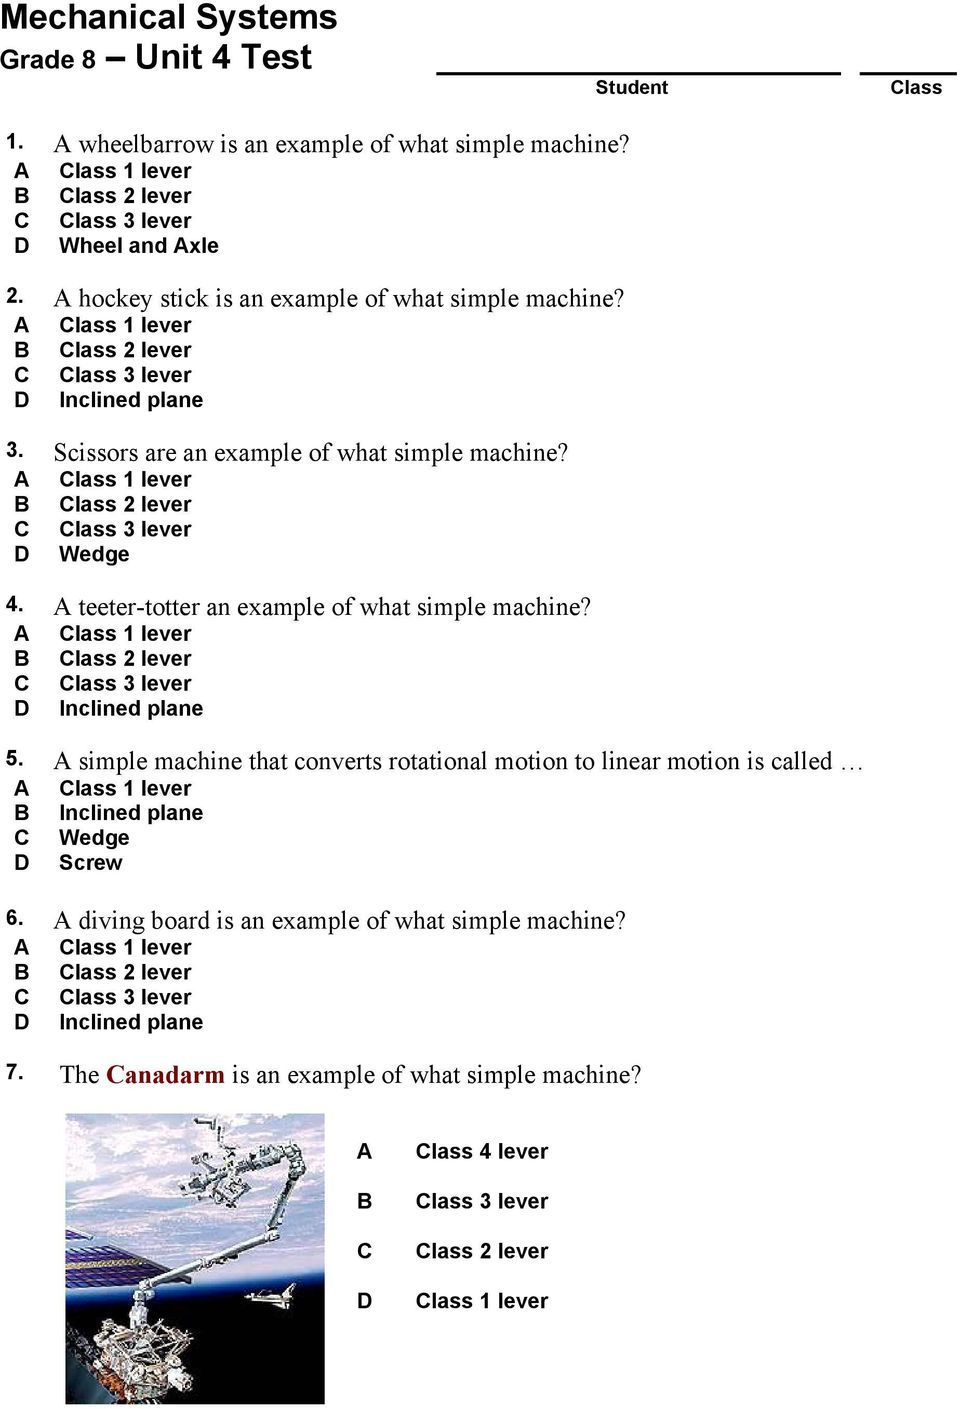 hight resolution of Mechanical Systems. Grade 8 Unit 4 Test. 1. A wheelbarrow is an example of  what simple machine? Class 1 lever. Class 2 lever. - PDF Free Download